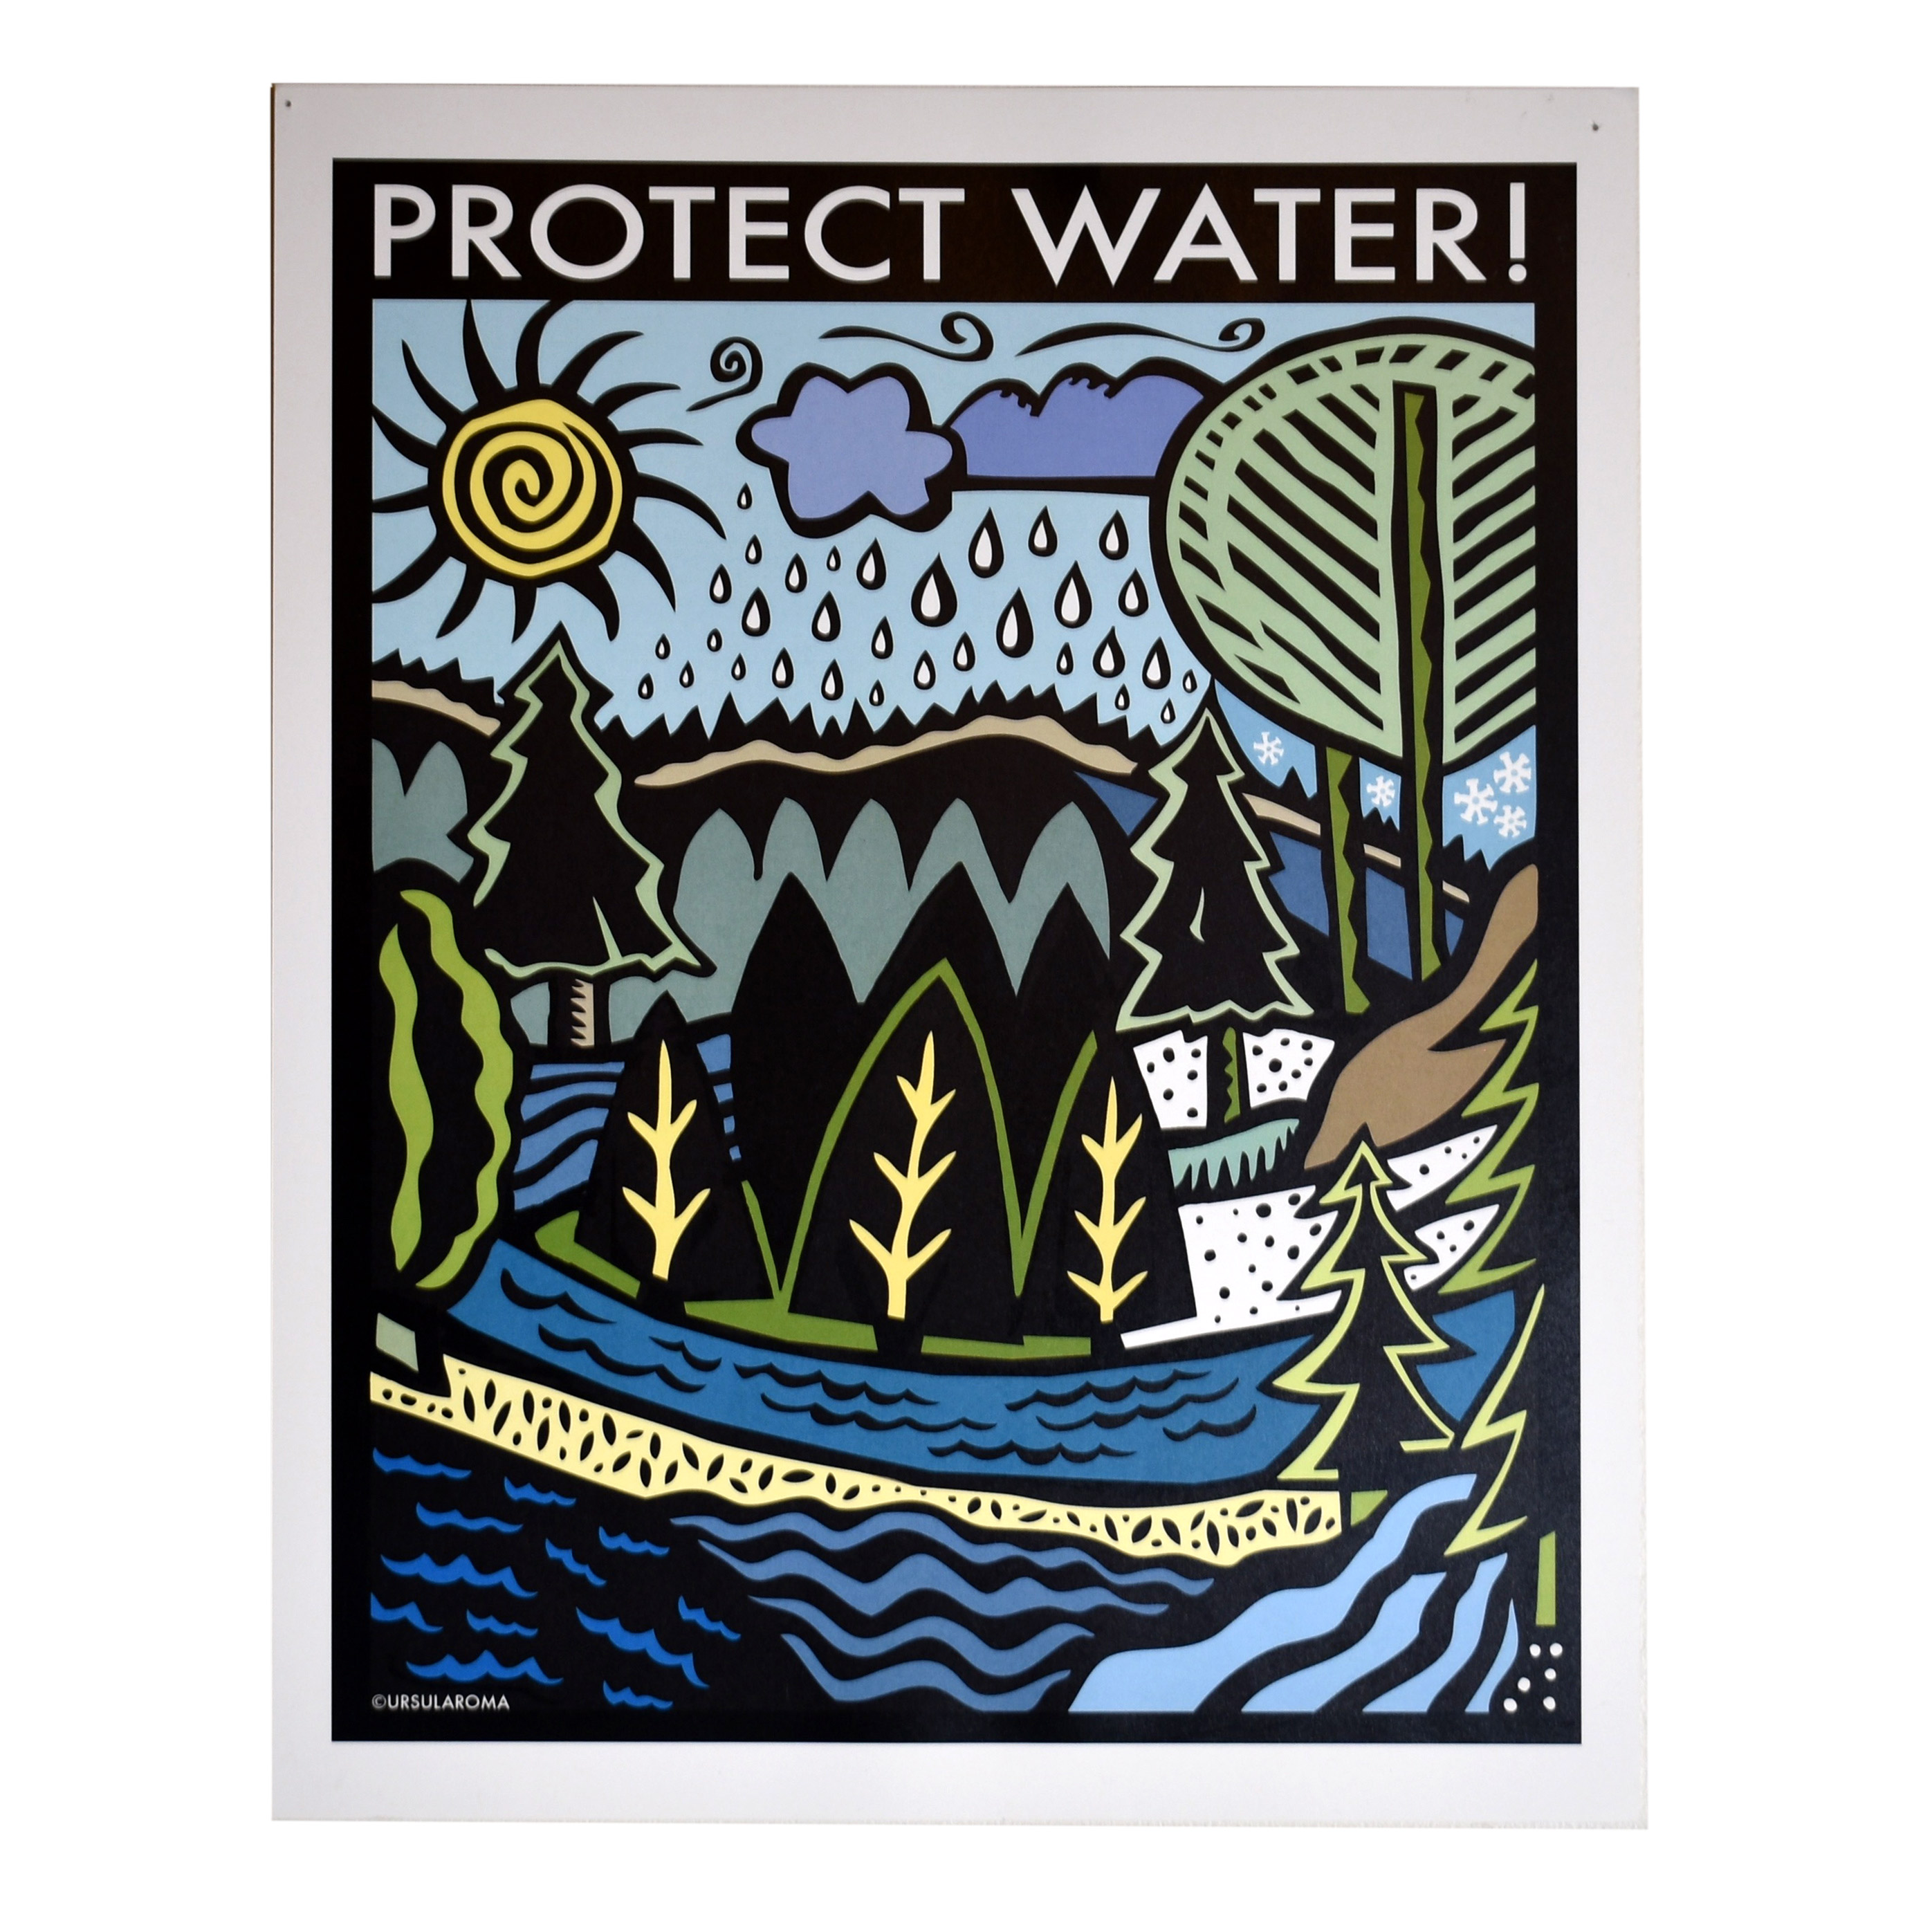 Protect Water!